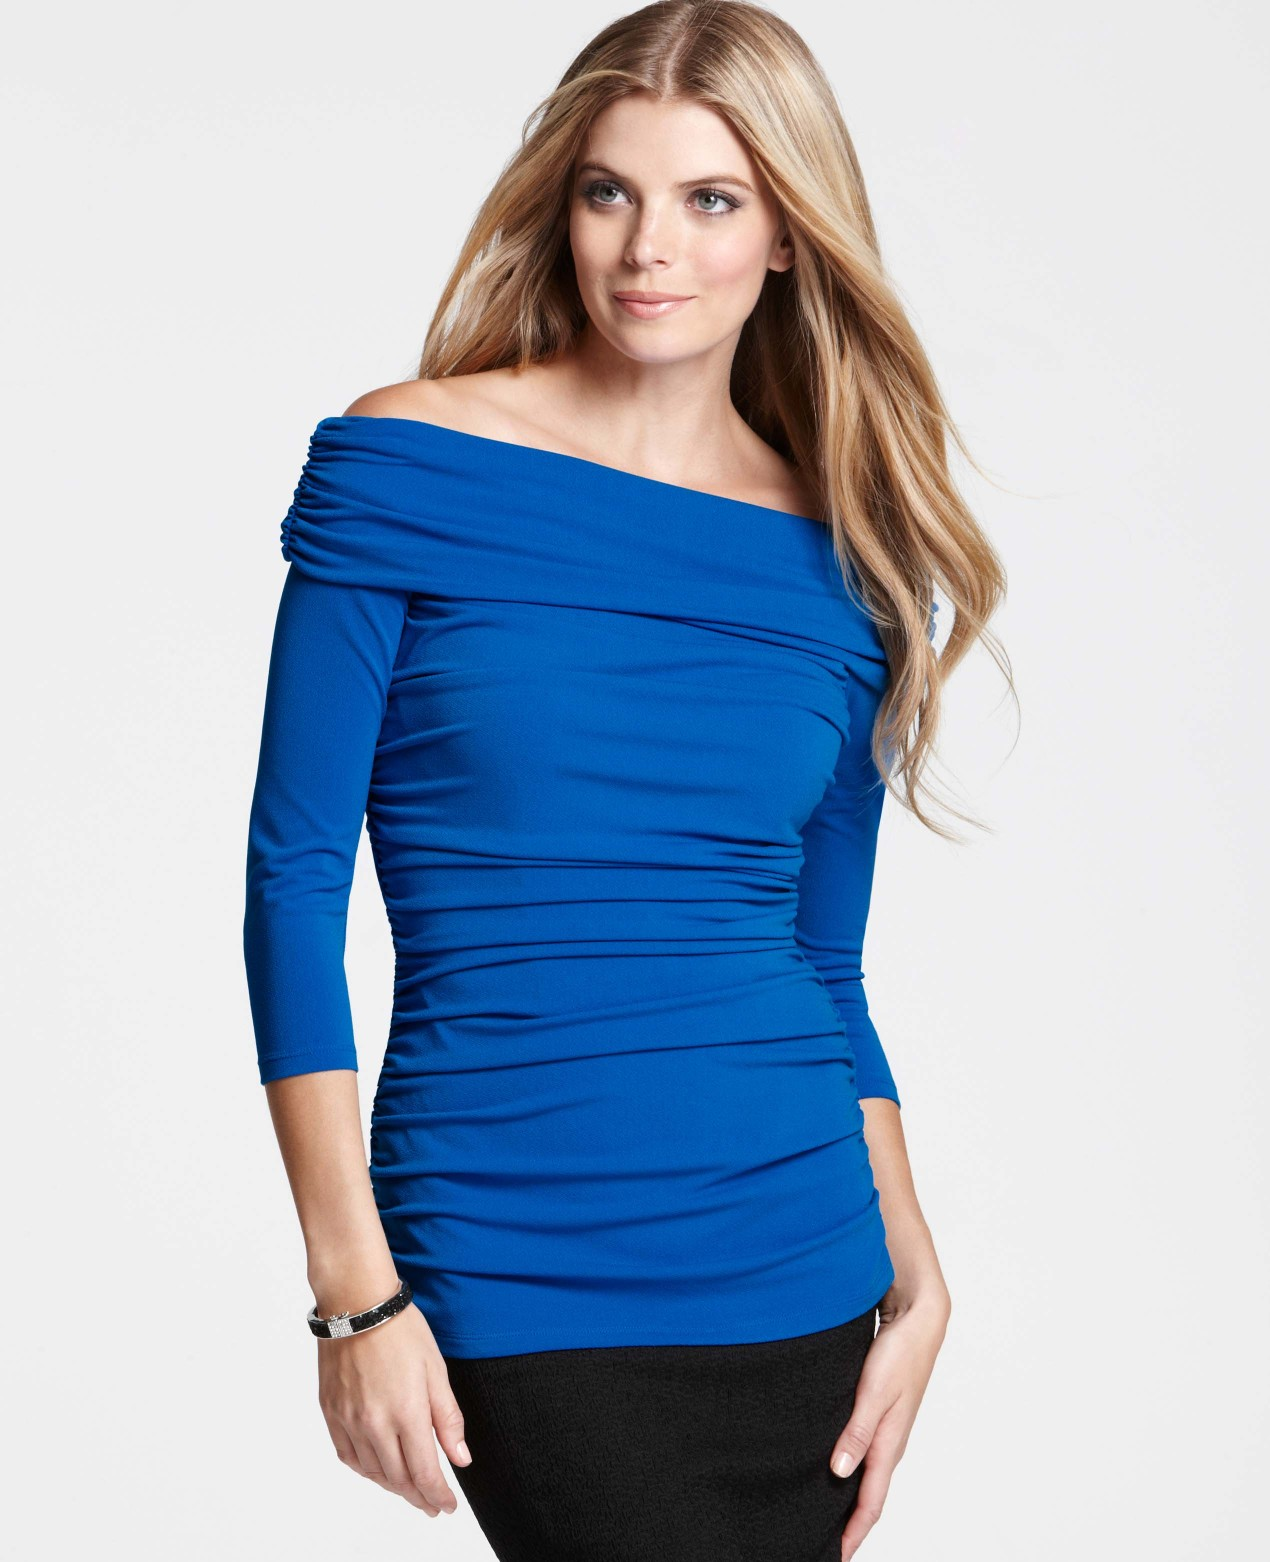 eb5604d547fa3 Lyst - Ann Taylor Ruched Off The Shoulder Top in Blue